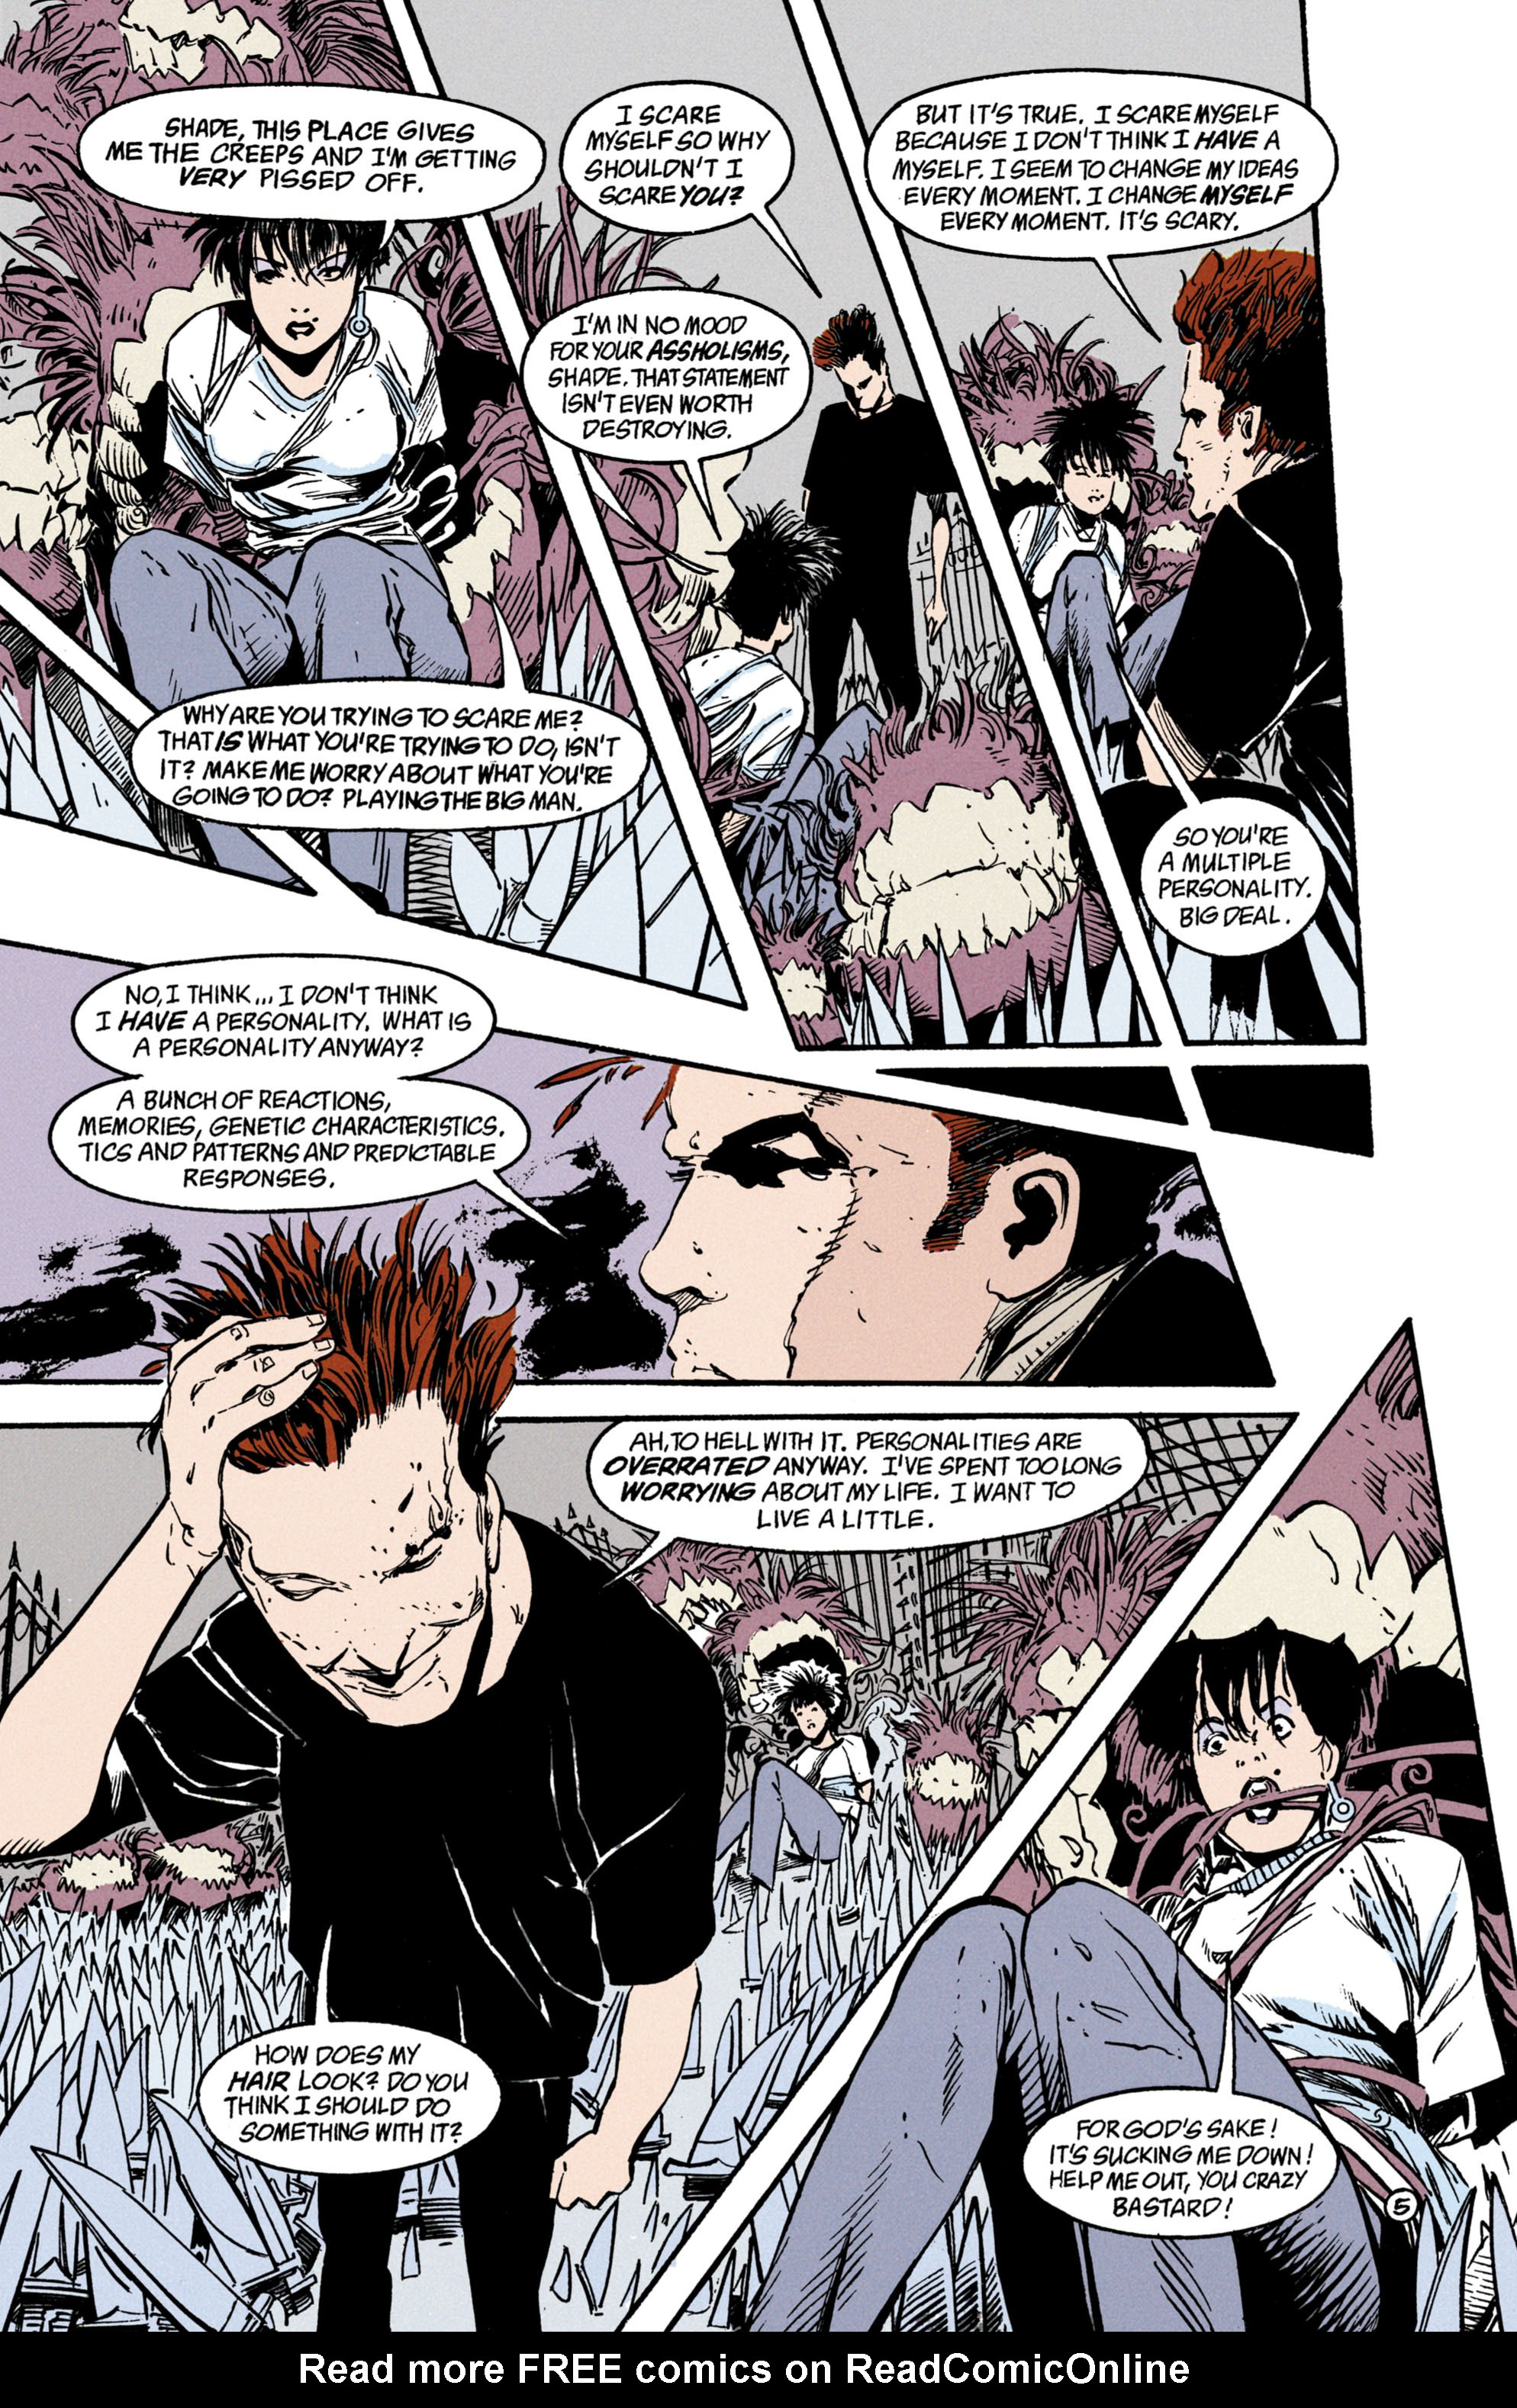 Read online Shade, the Changing Man comic -  Issue #35 - 6